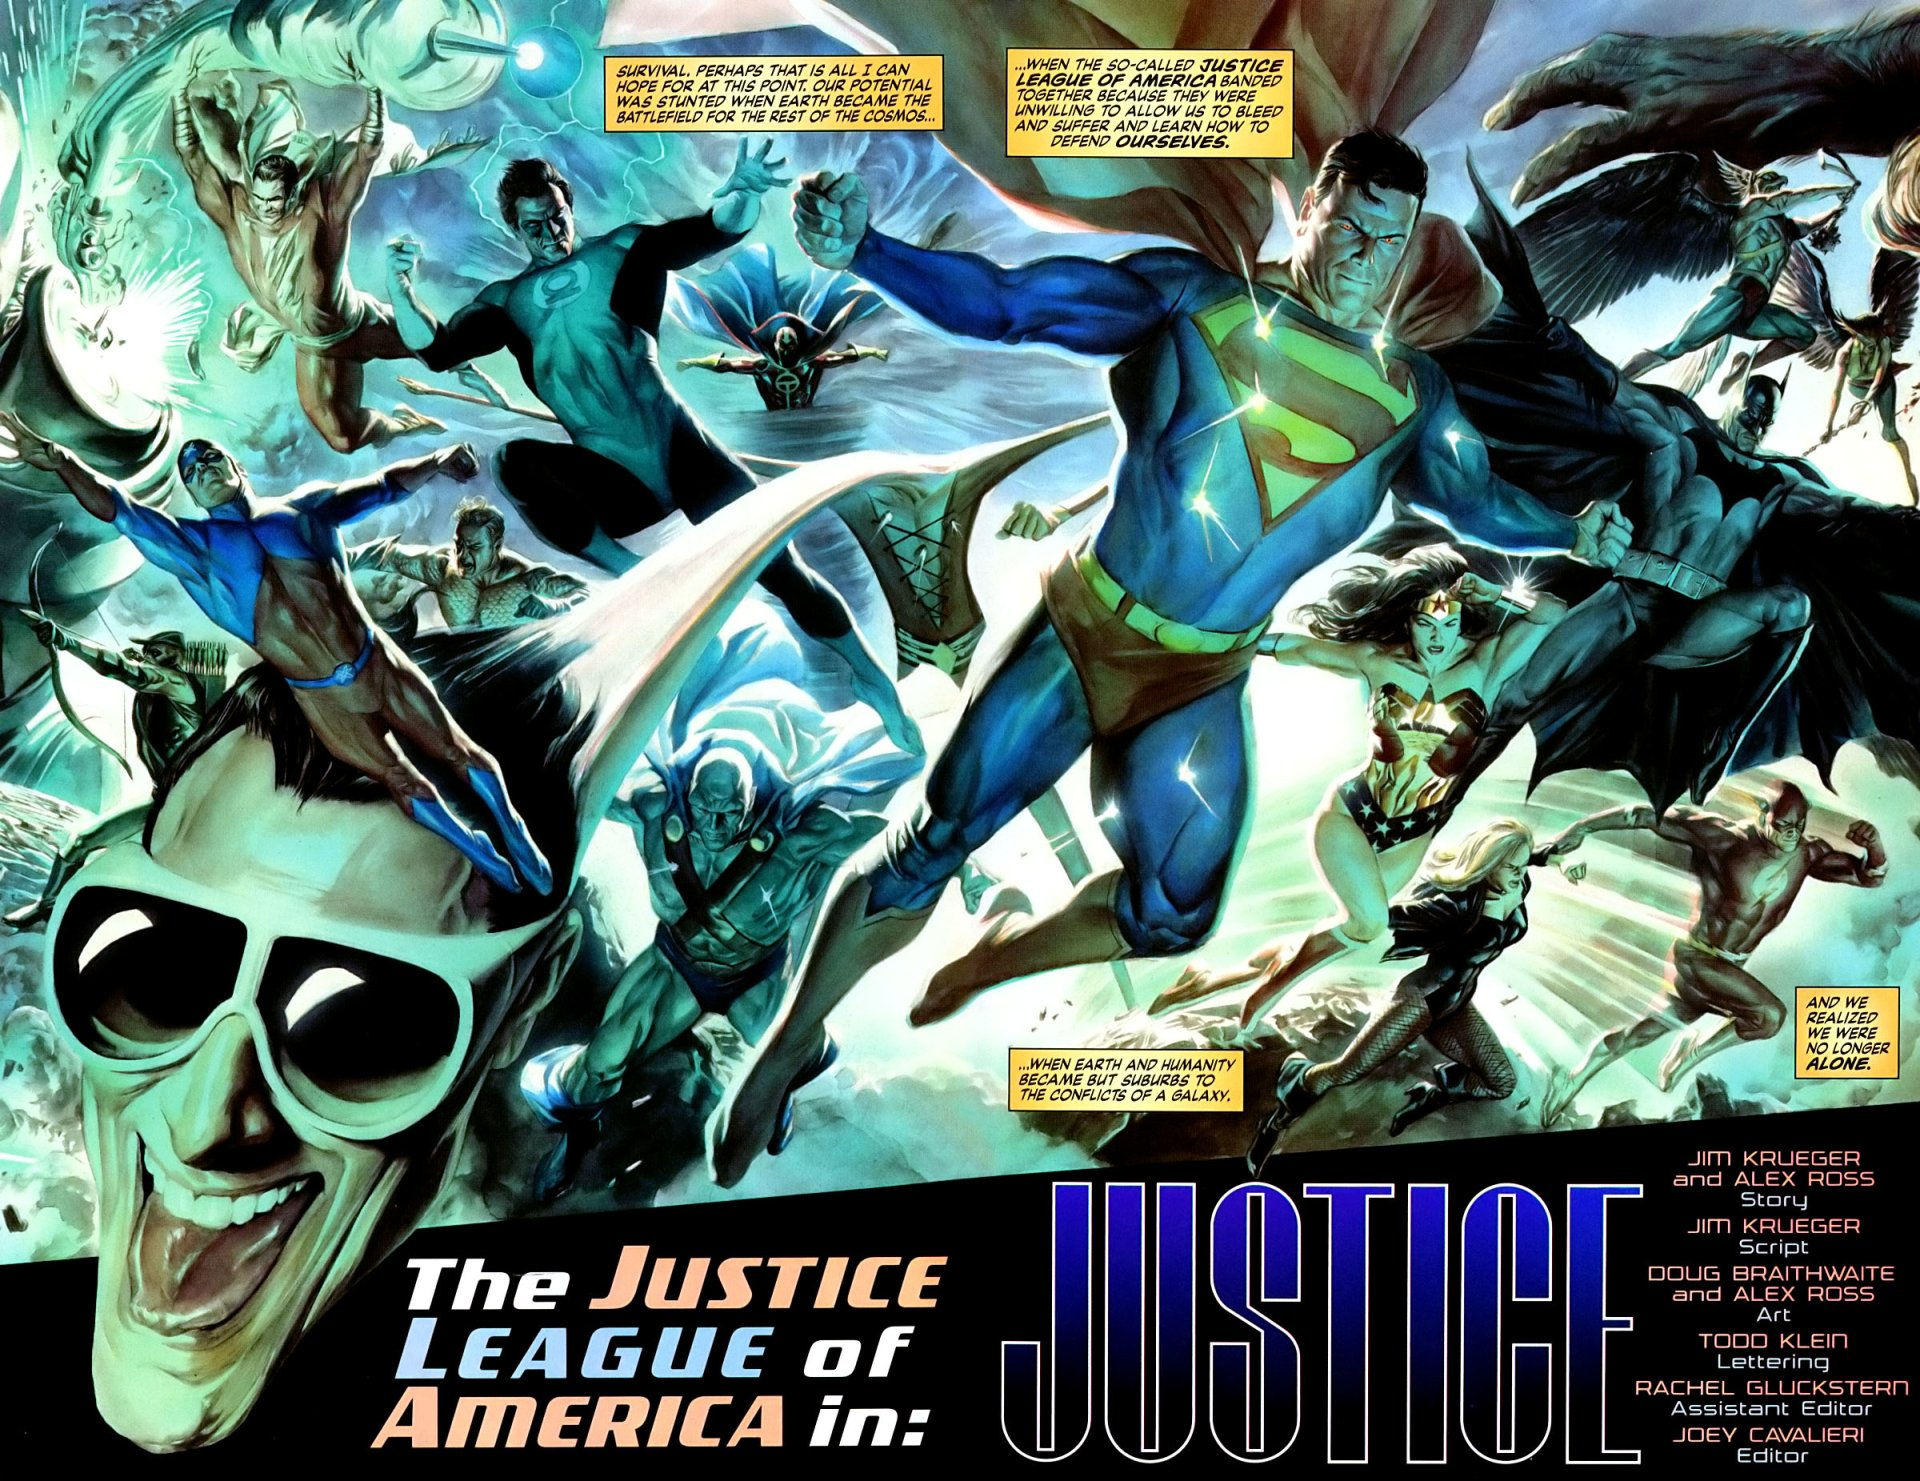 Green Arrow Wallpaper Hd Justice League Full Hd Wallpaper And Background Image